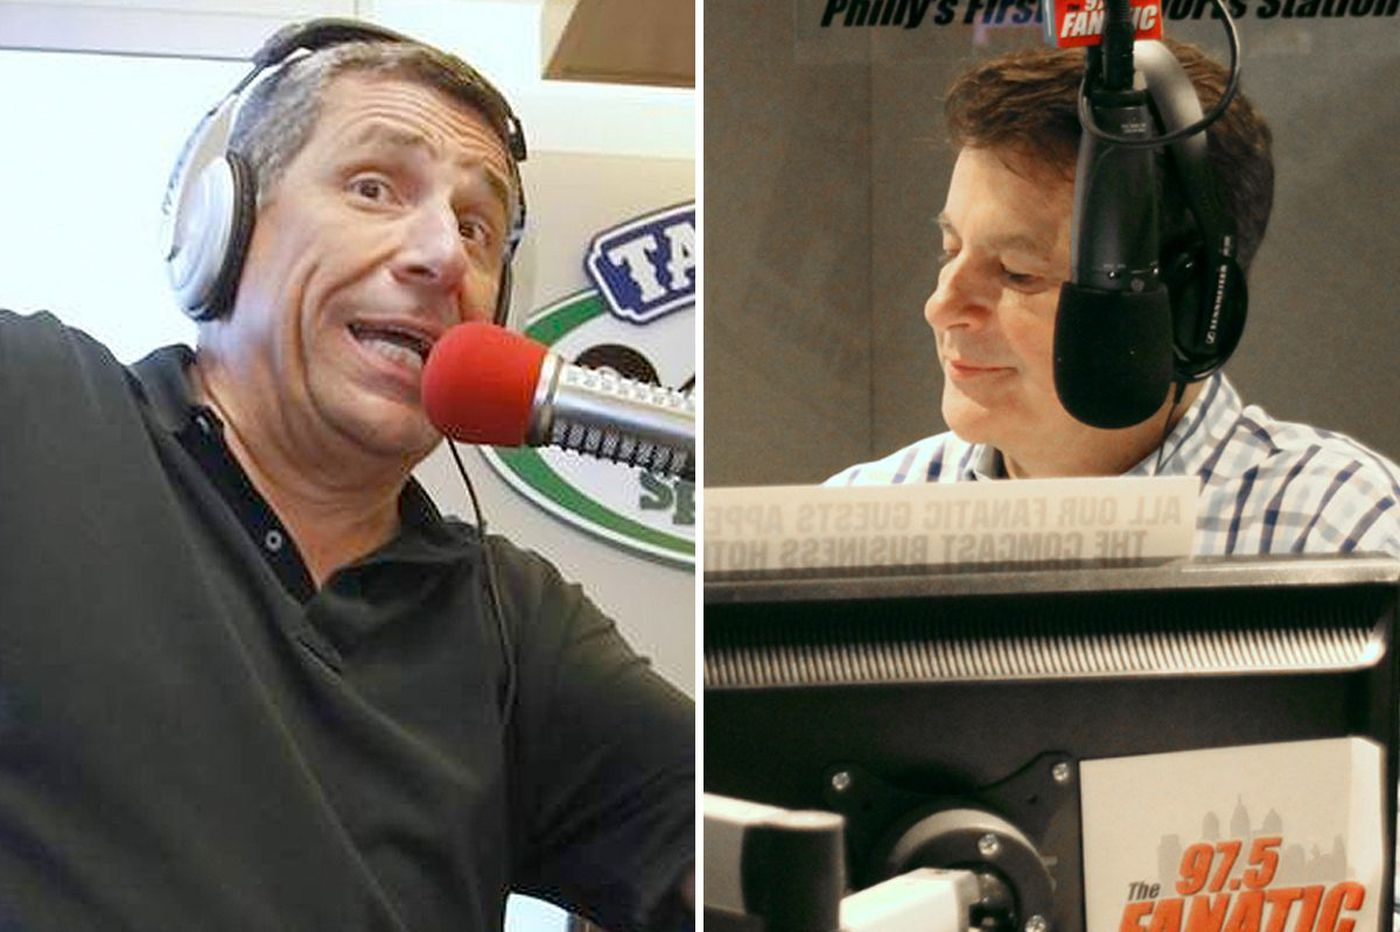 Missanelli down, Cataldi still dominant in latest Philly sports radio ratings